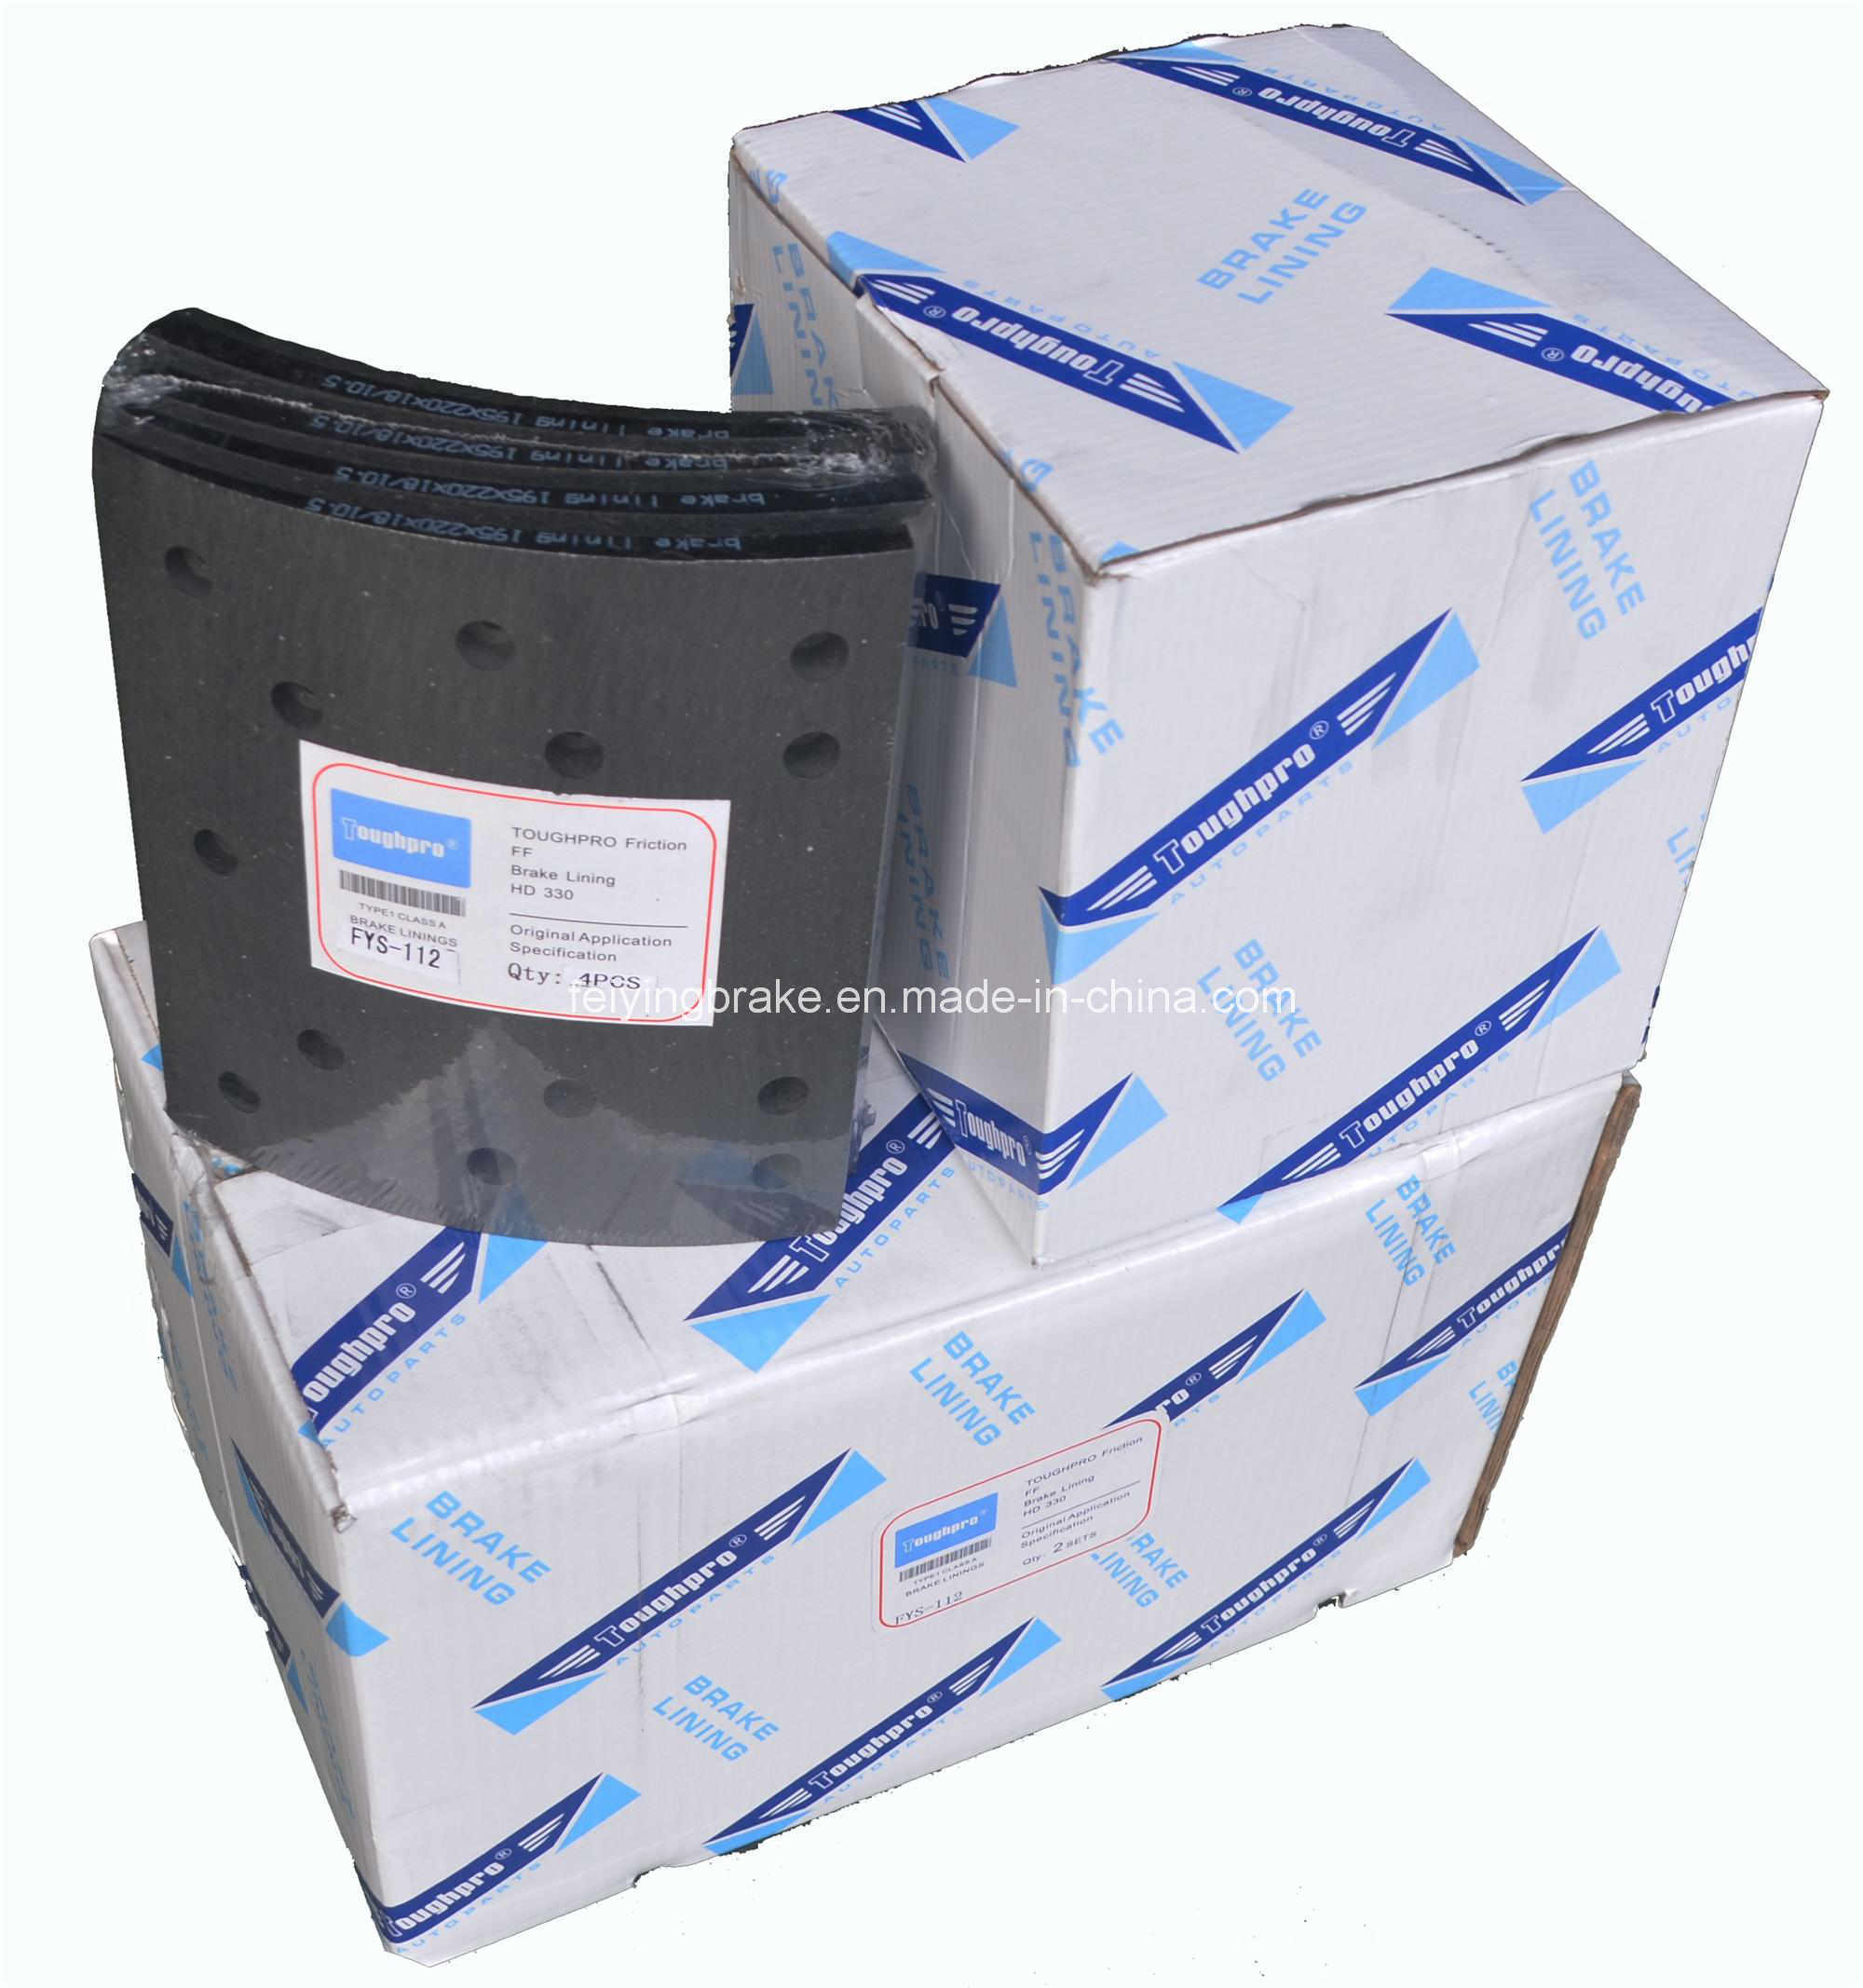 Semi-Metallic Brake Lining HOWO -A7 with Asbetos or Asbetos Free